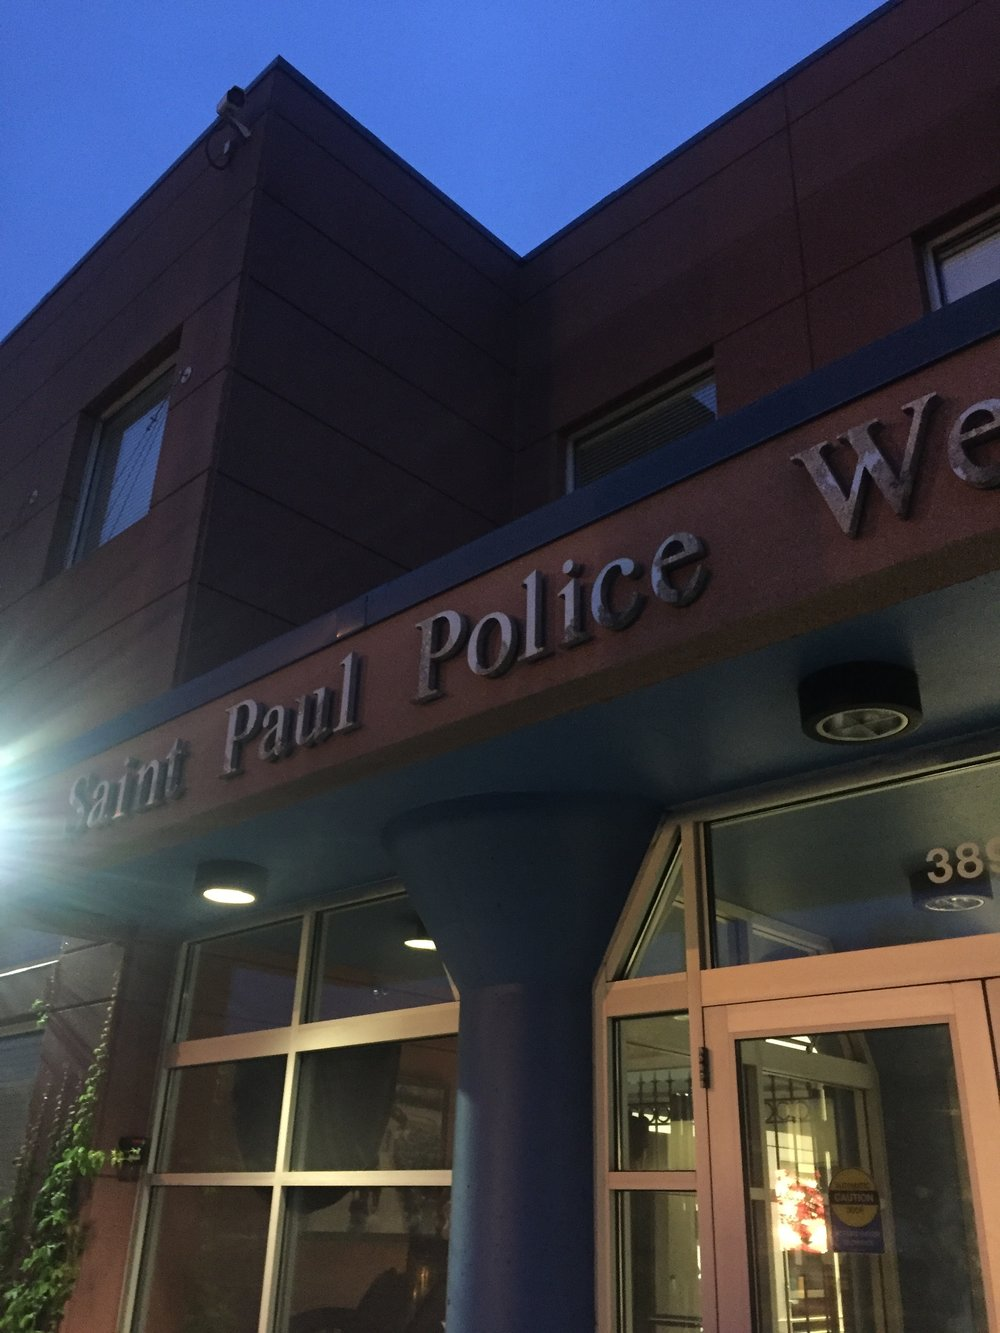 We got the chance to attend roll call at St. Paul PD.